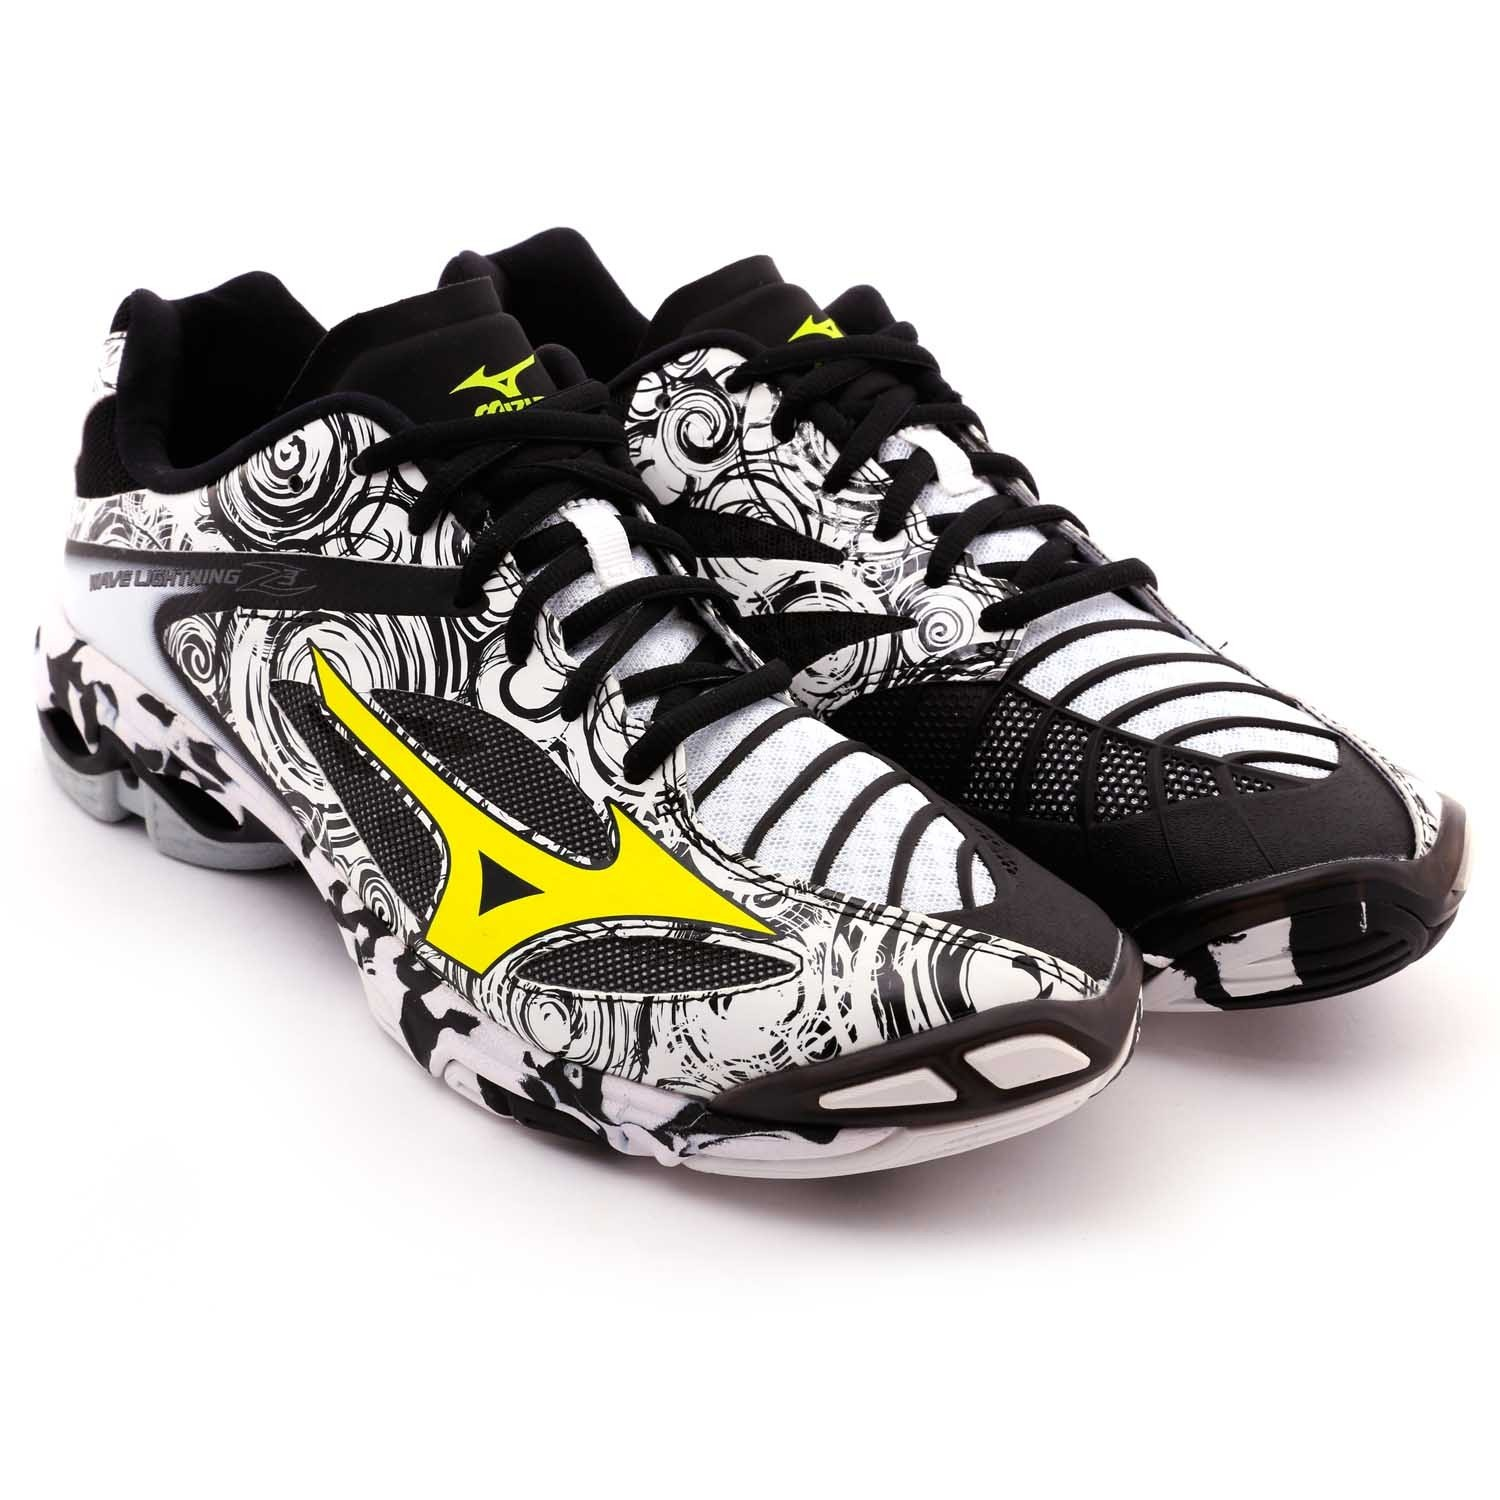 Maxx Shoes Price